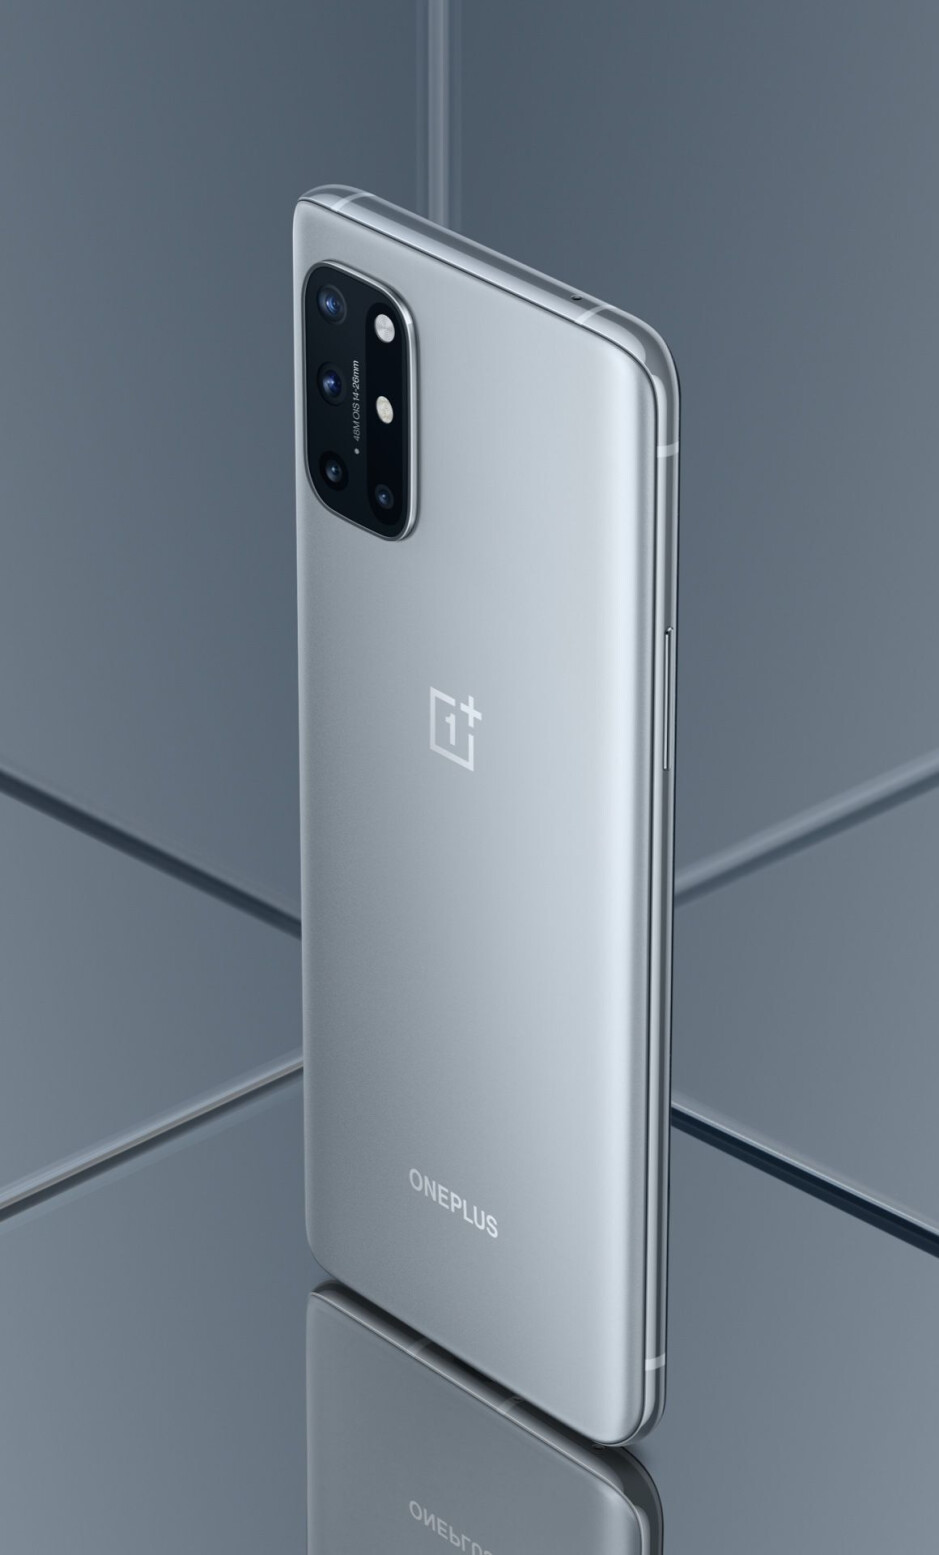 Lunar Silver - The OnePlus 8T arrives with two batteries, a 120Hz flat display, and 65W fast charging